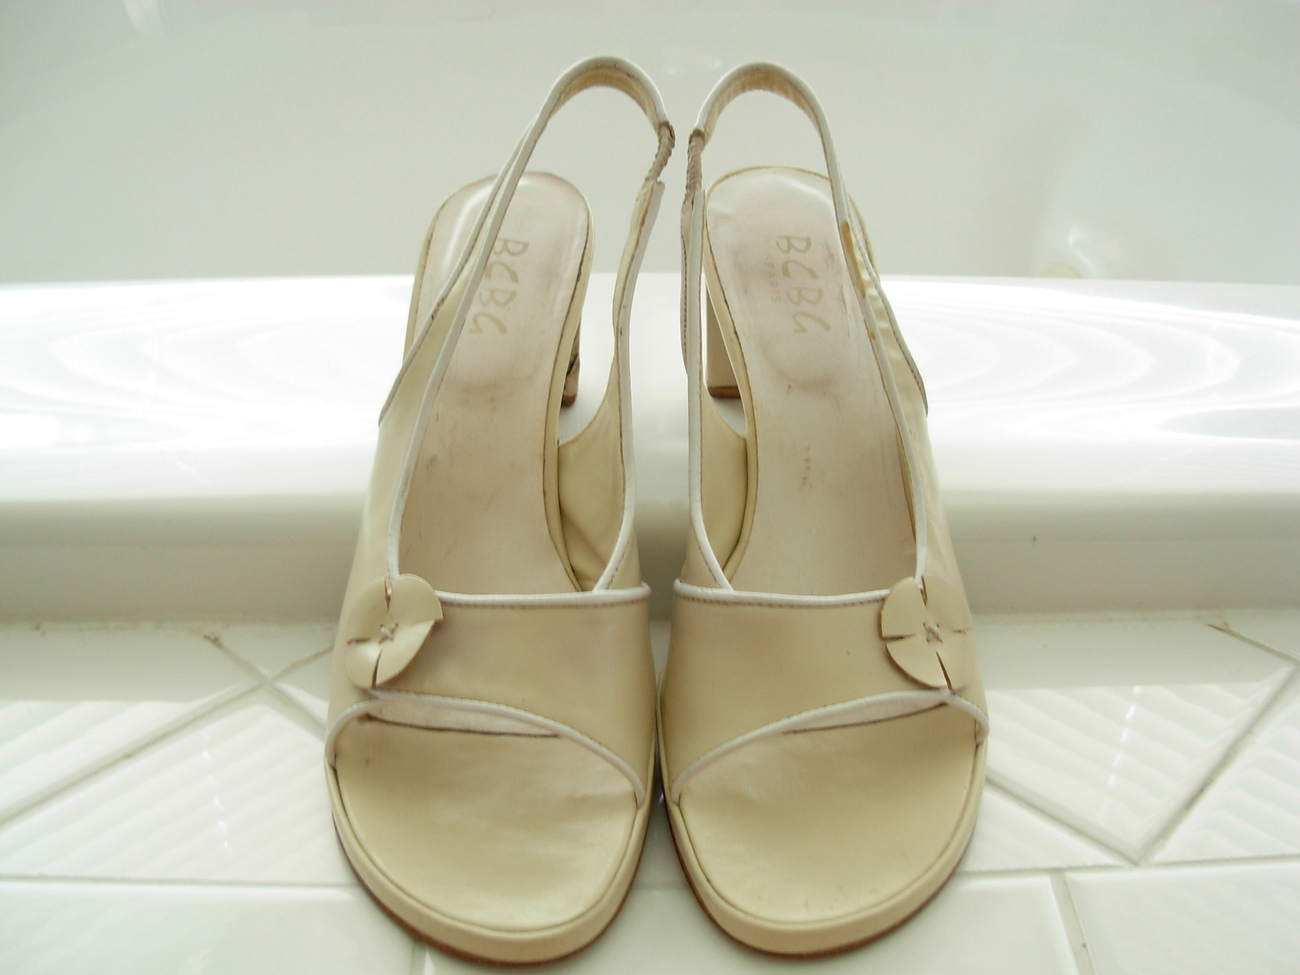 BCBG CREAM COLOR FORMAL WOMEN'S HEELED SUMMER SHOES